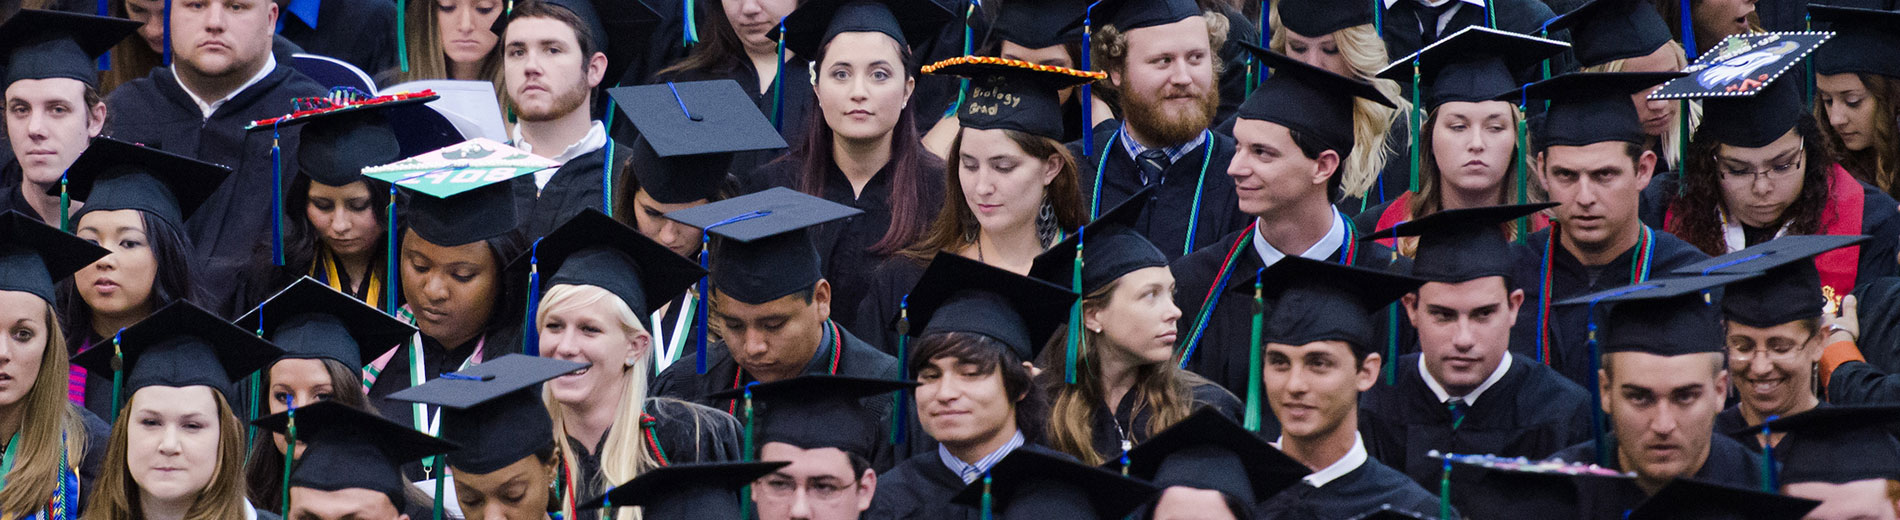 Photos of students at commencement